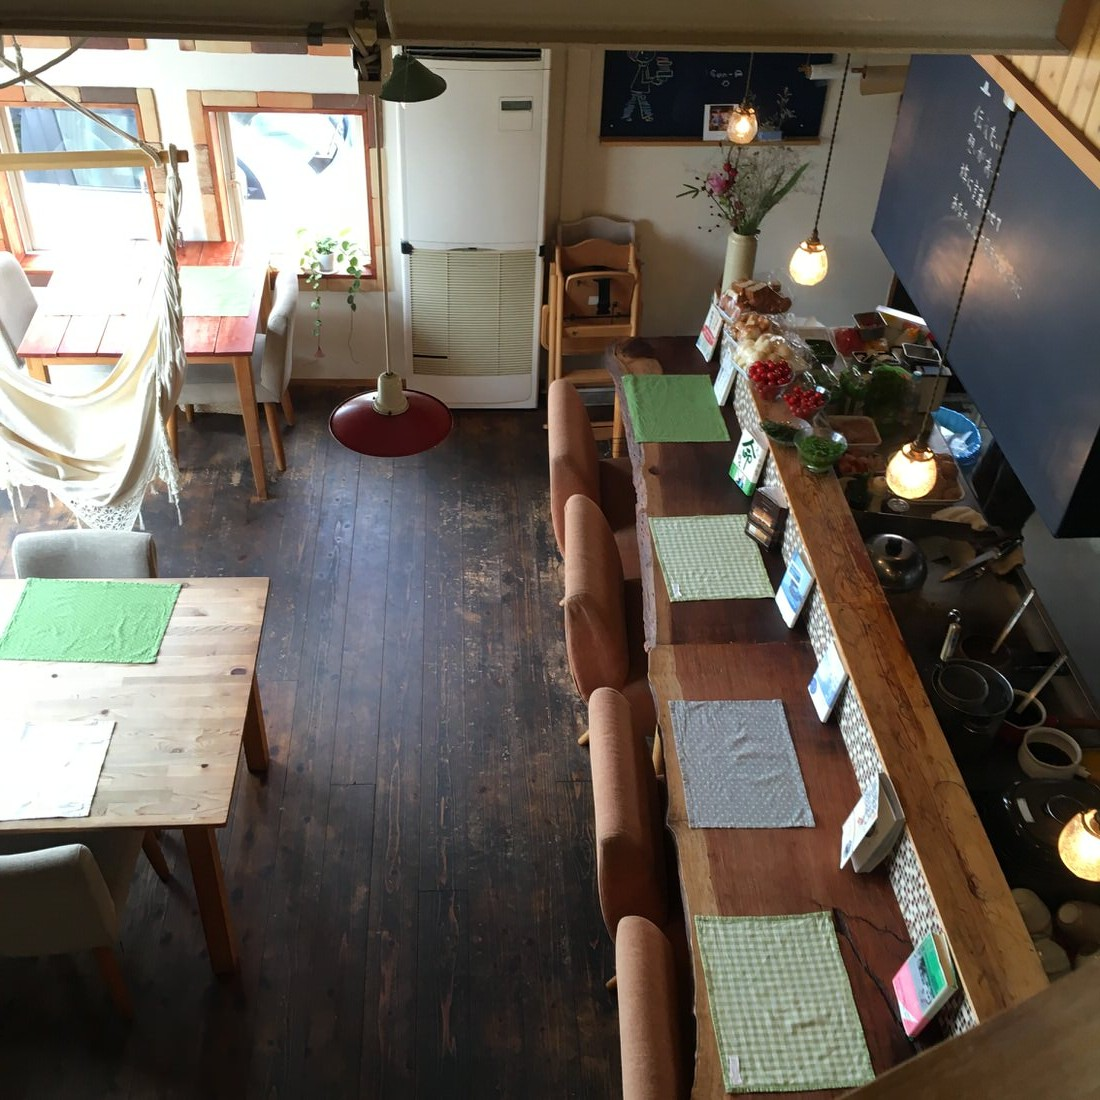 cafe-open-2階から